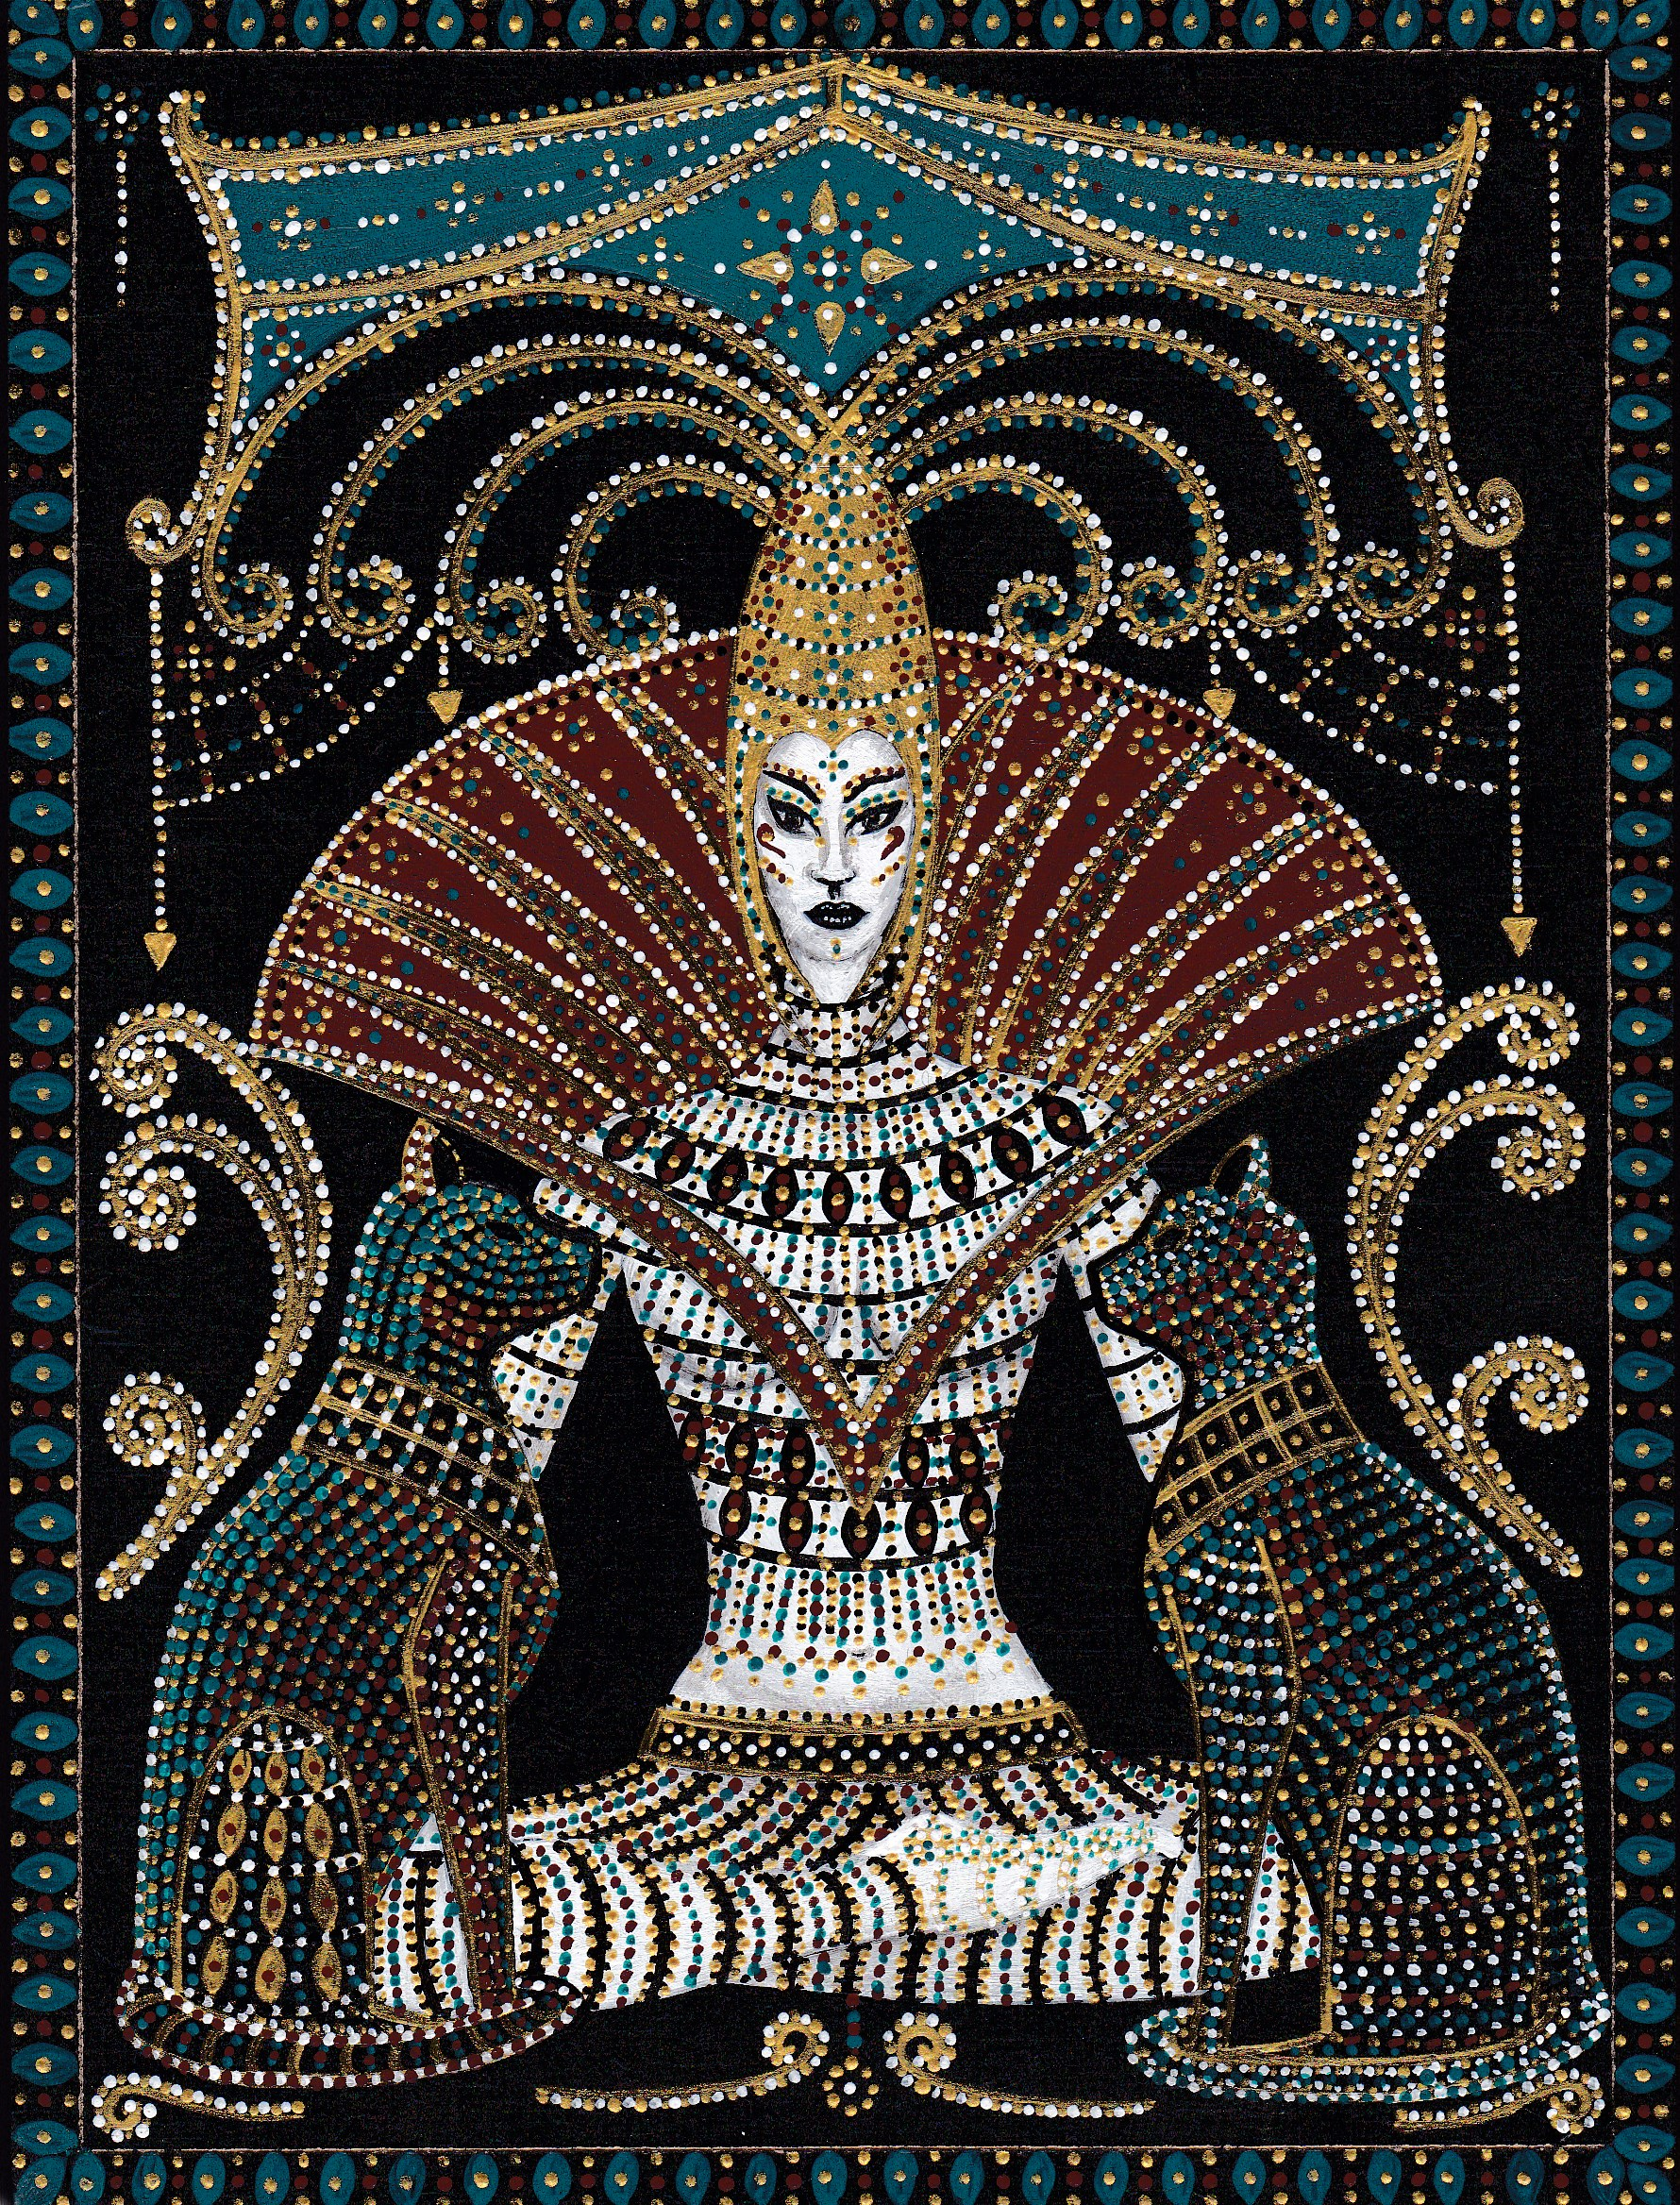 Seated Queen with cats 2